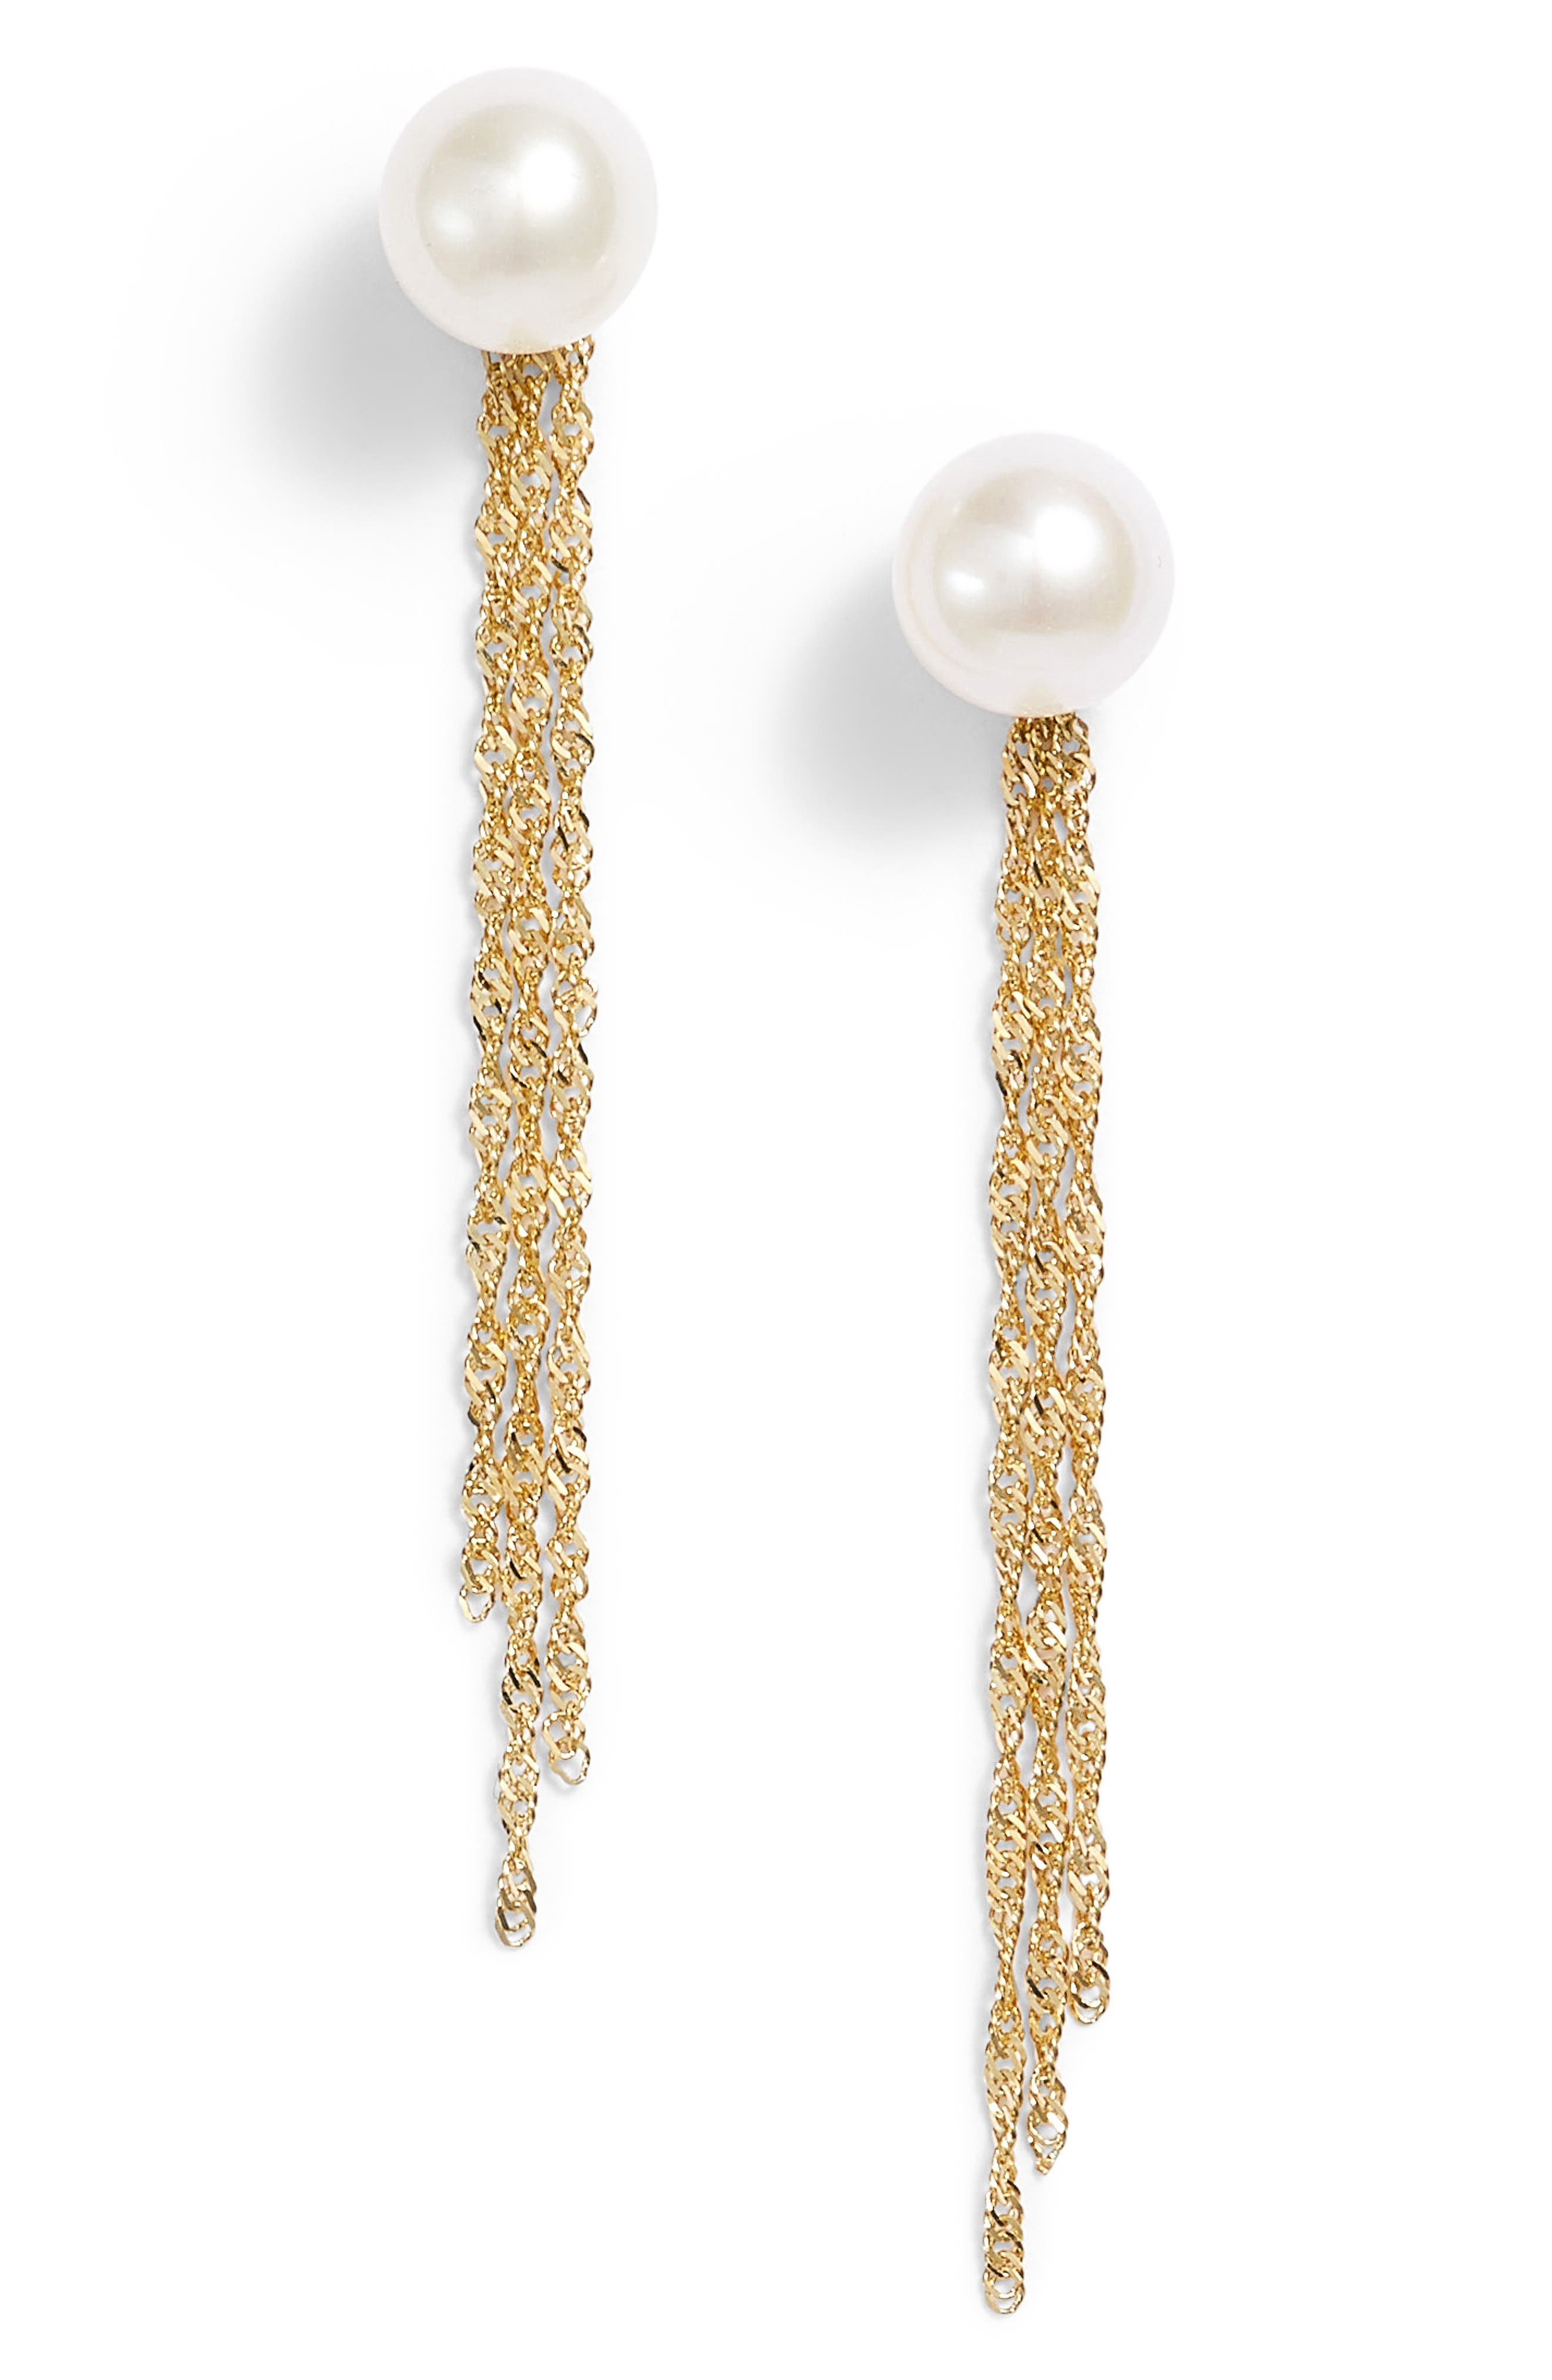 Gold Tassel Jacket Pearl Stud Earrings,                         Main,                         color, YELLOW GOLD/ PEARL